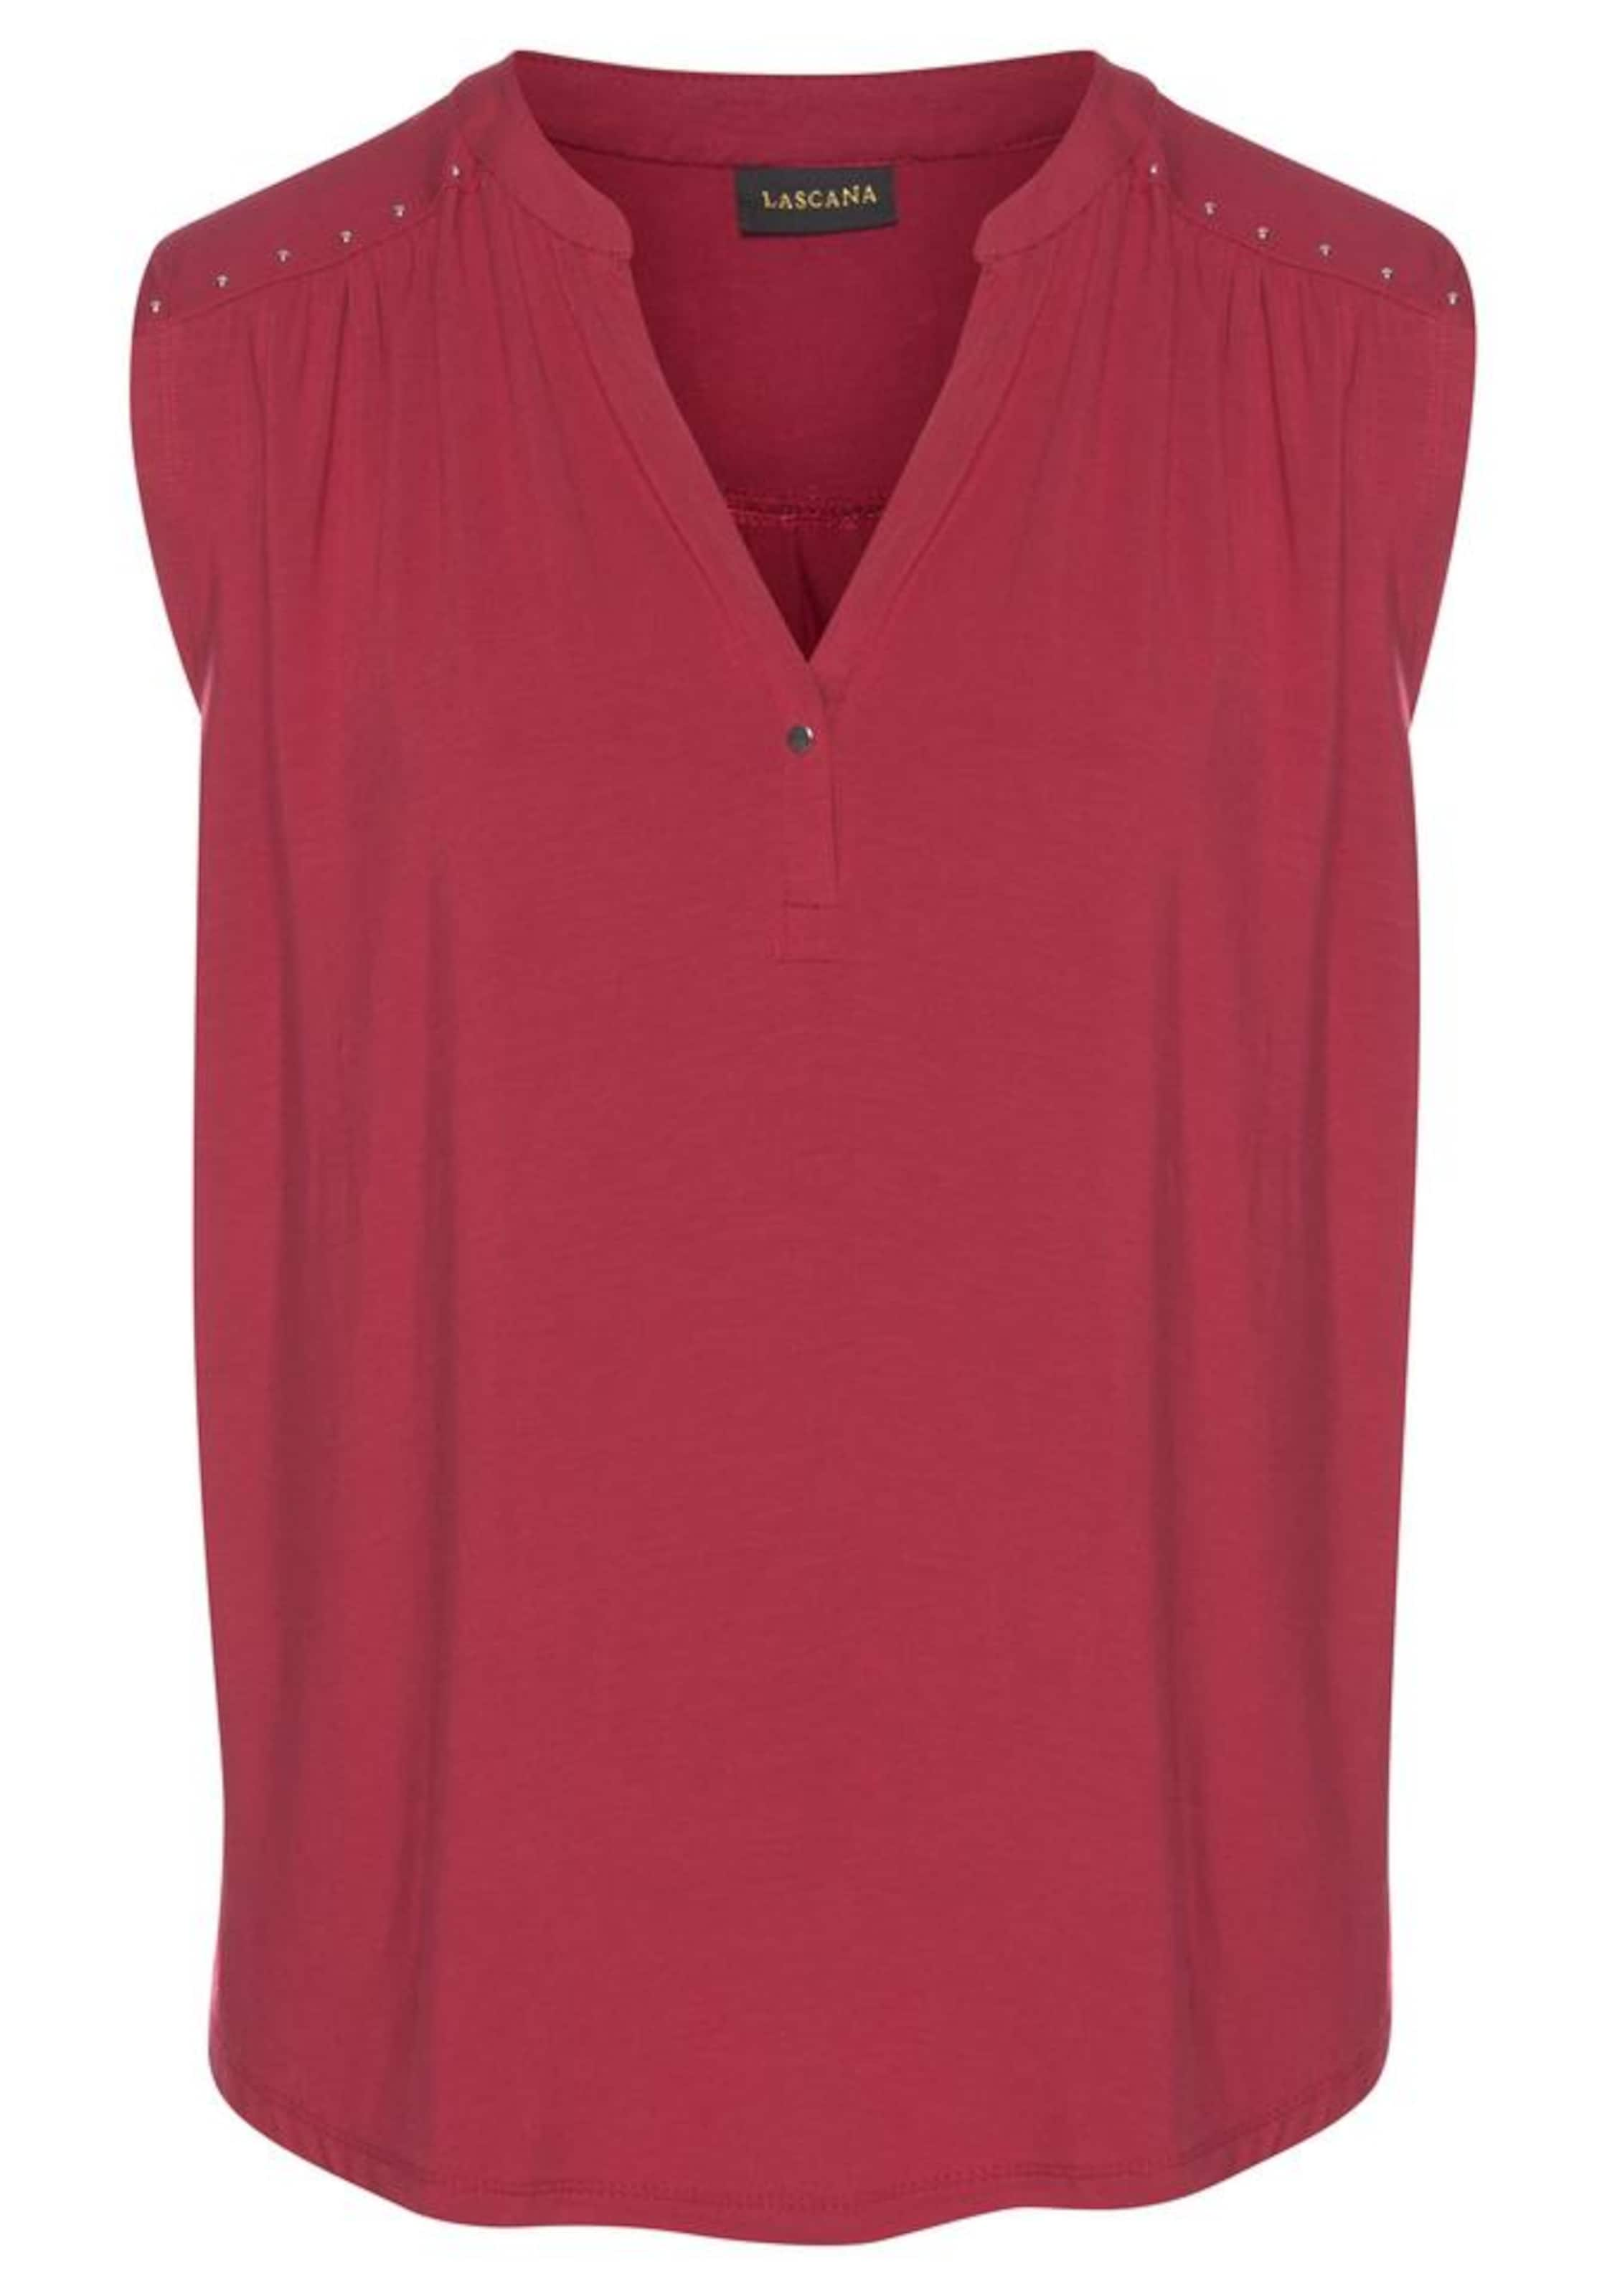 Lascana In Pastellrot Lascana In Strandtop Lascana Strandtop Strandtop In Pastellrot Pastellrot g7b6fyY